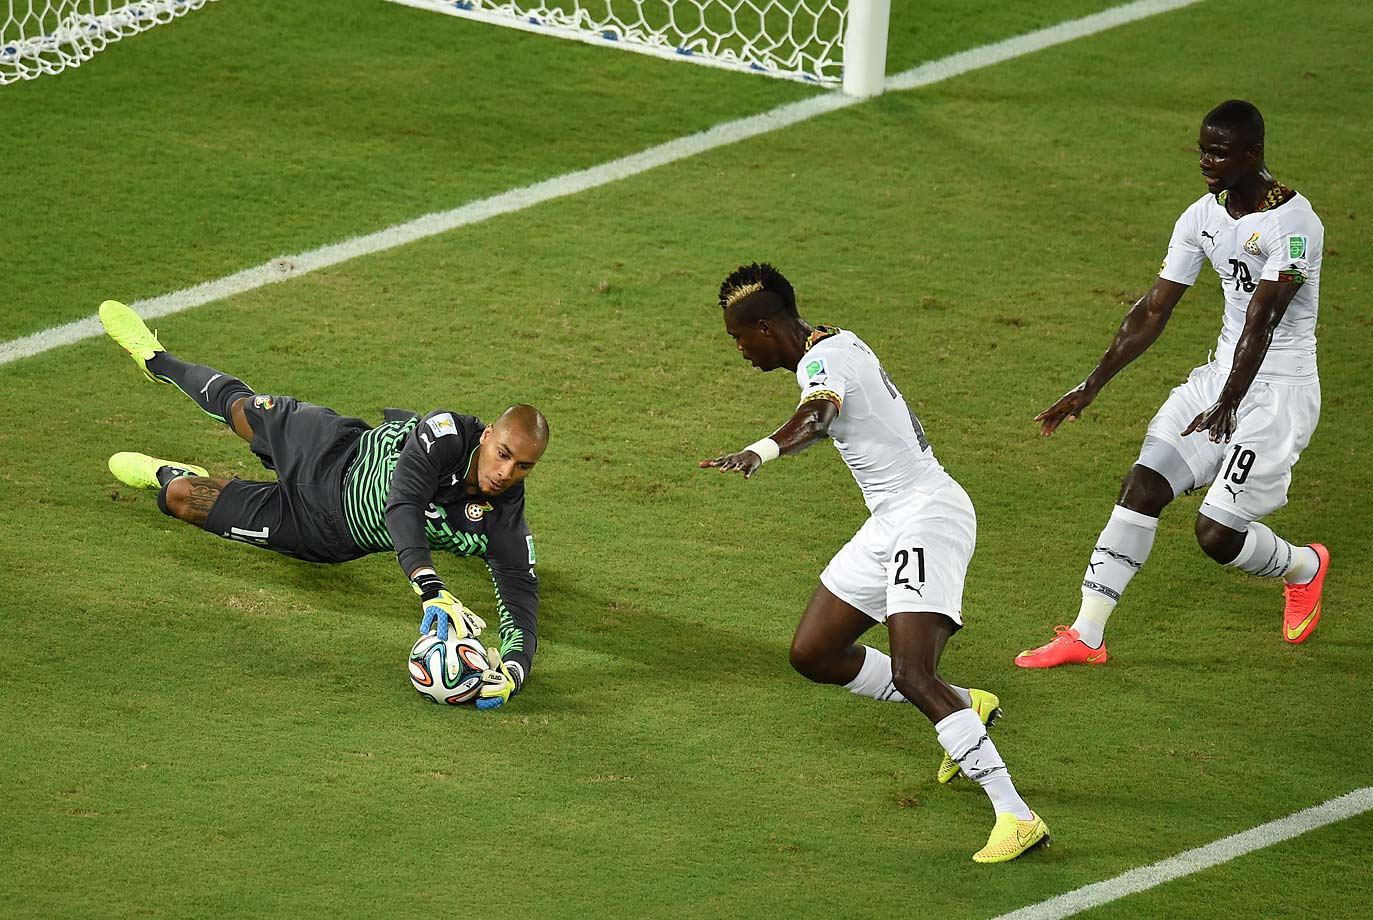 Ghana's goalkeeper Adam Larsen Kwarasey dives for the ball.